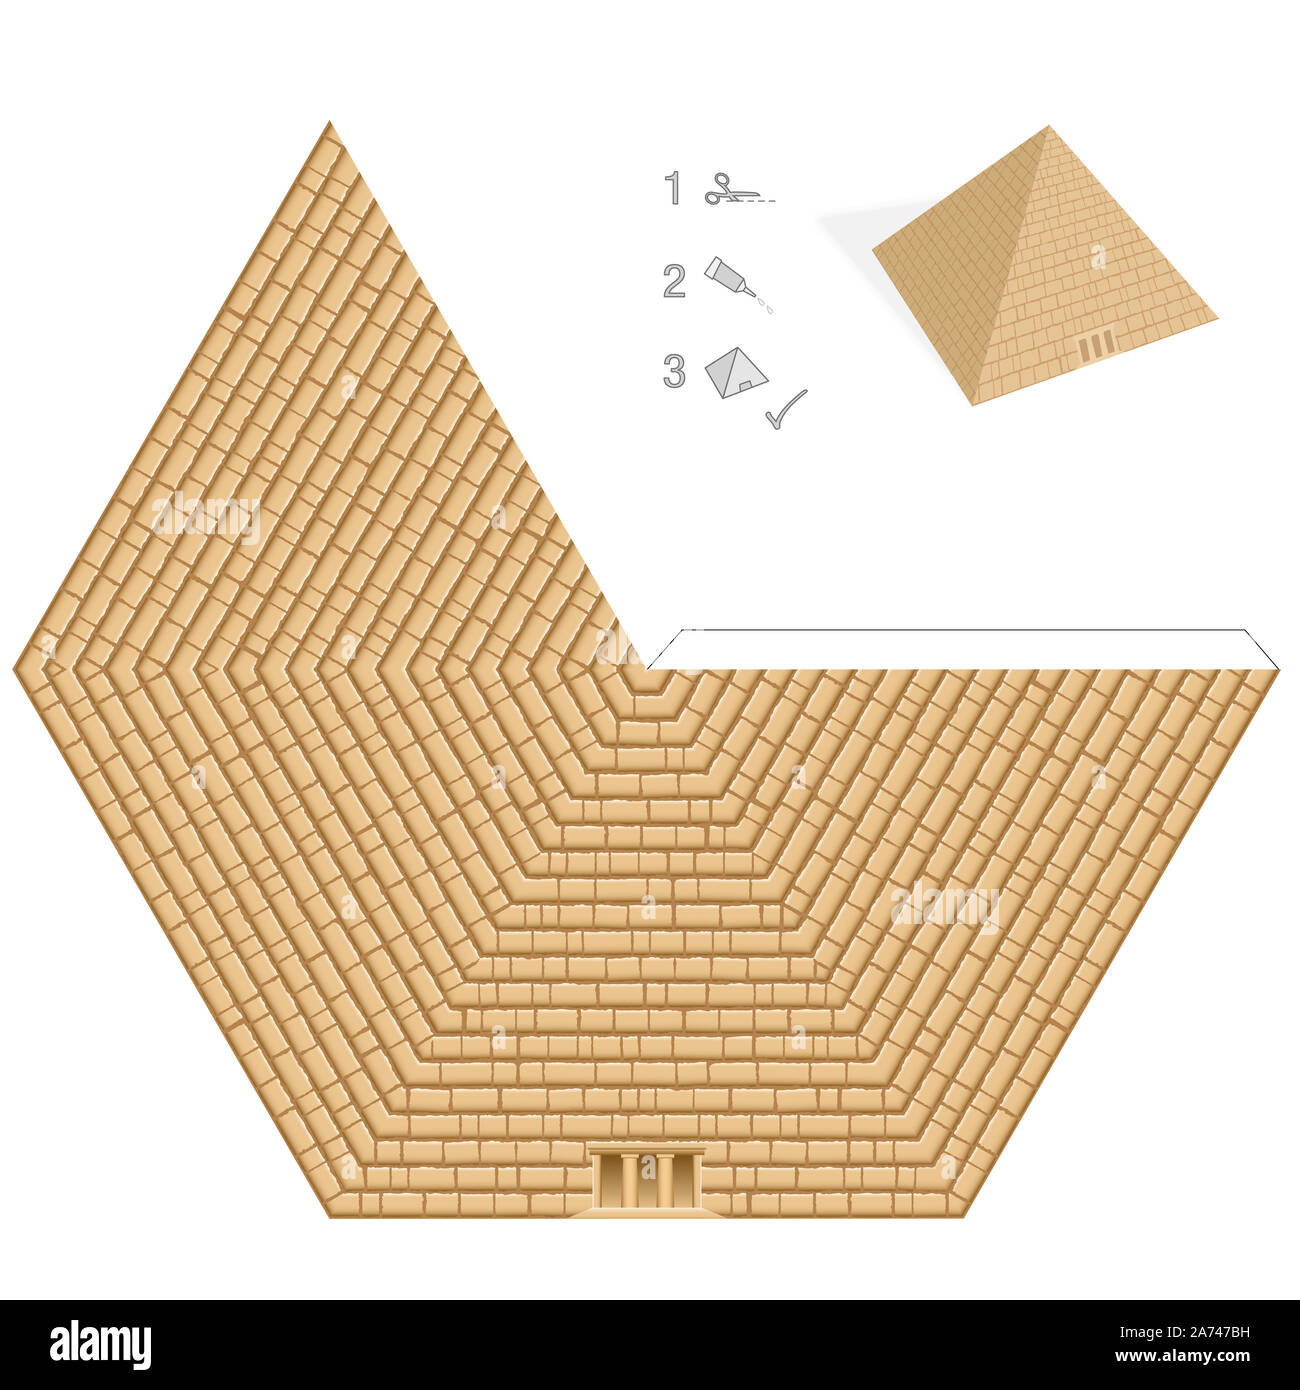 Pyramid Paper Model Easy Template